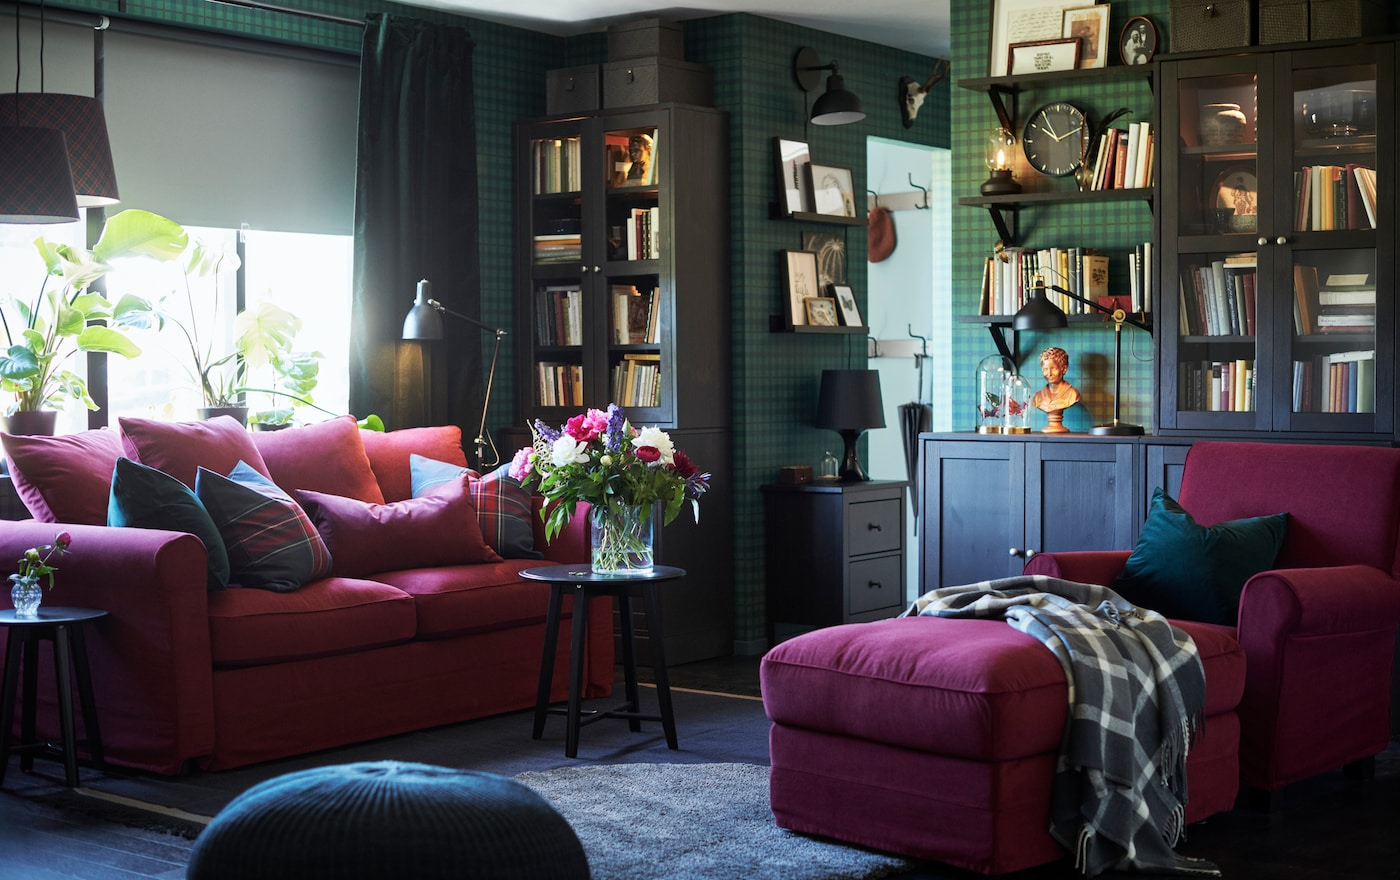 Living Room Styles Under Your Budget Qatar - IKEA